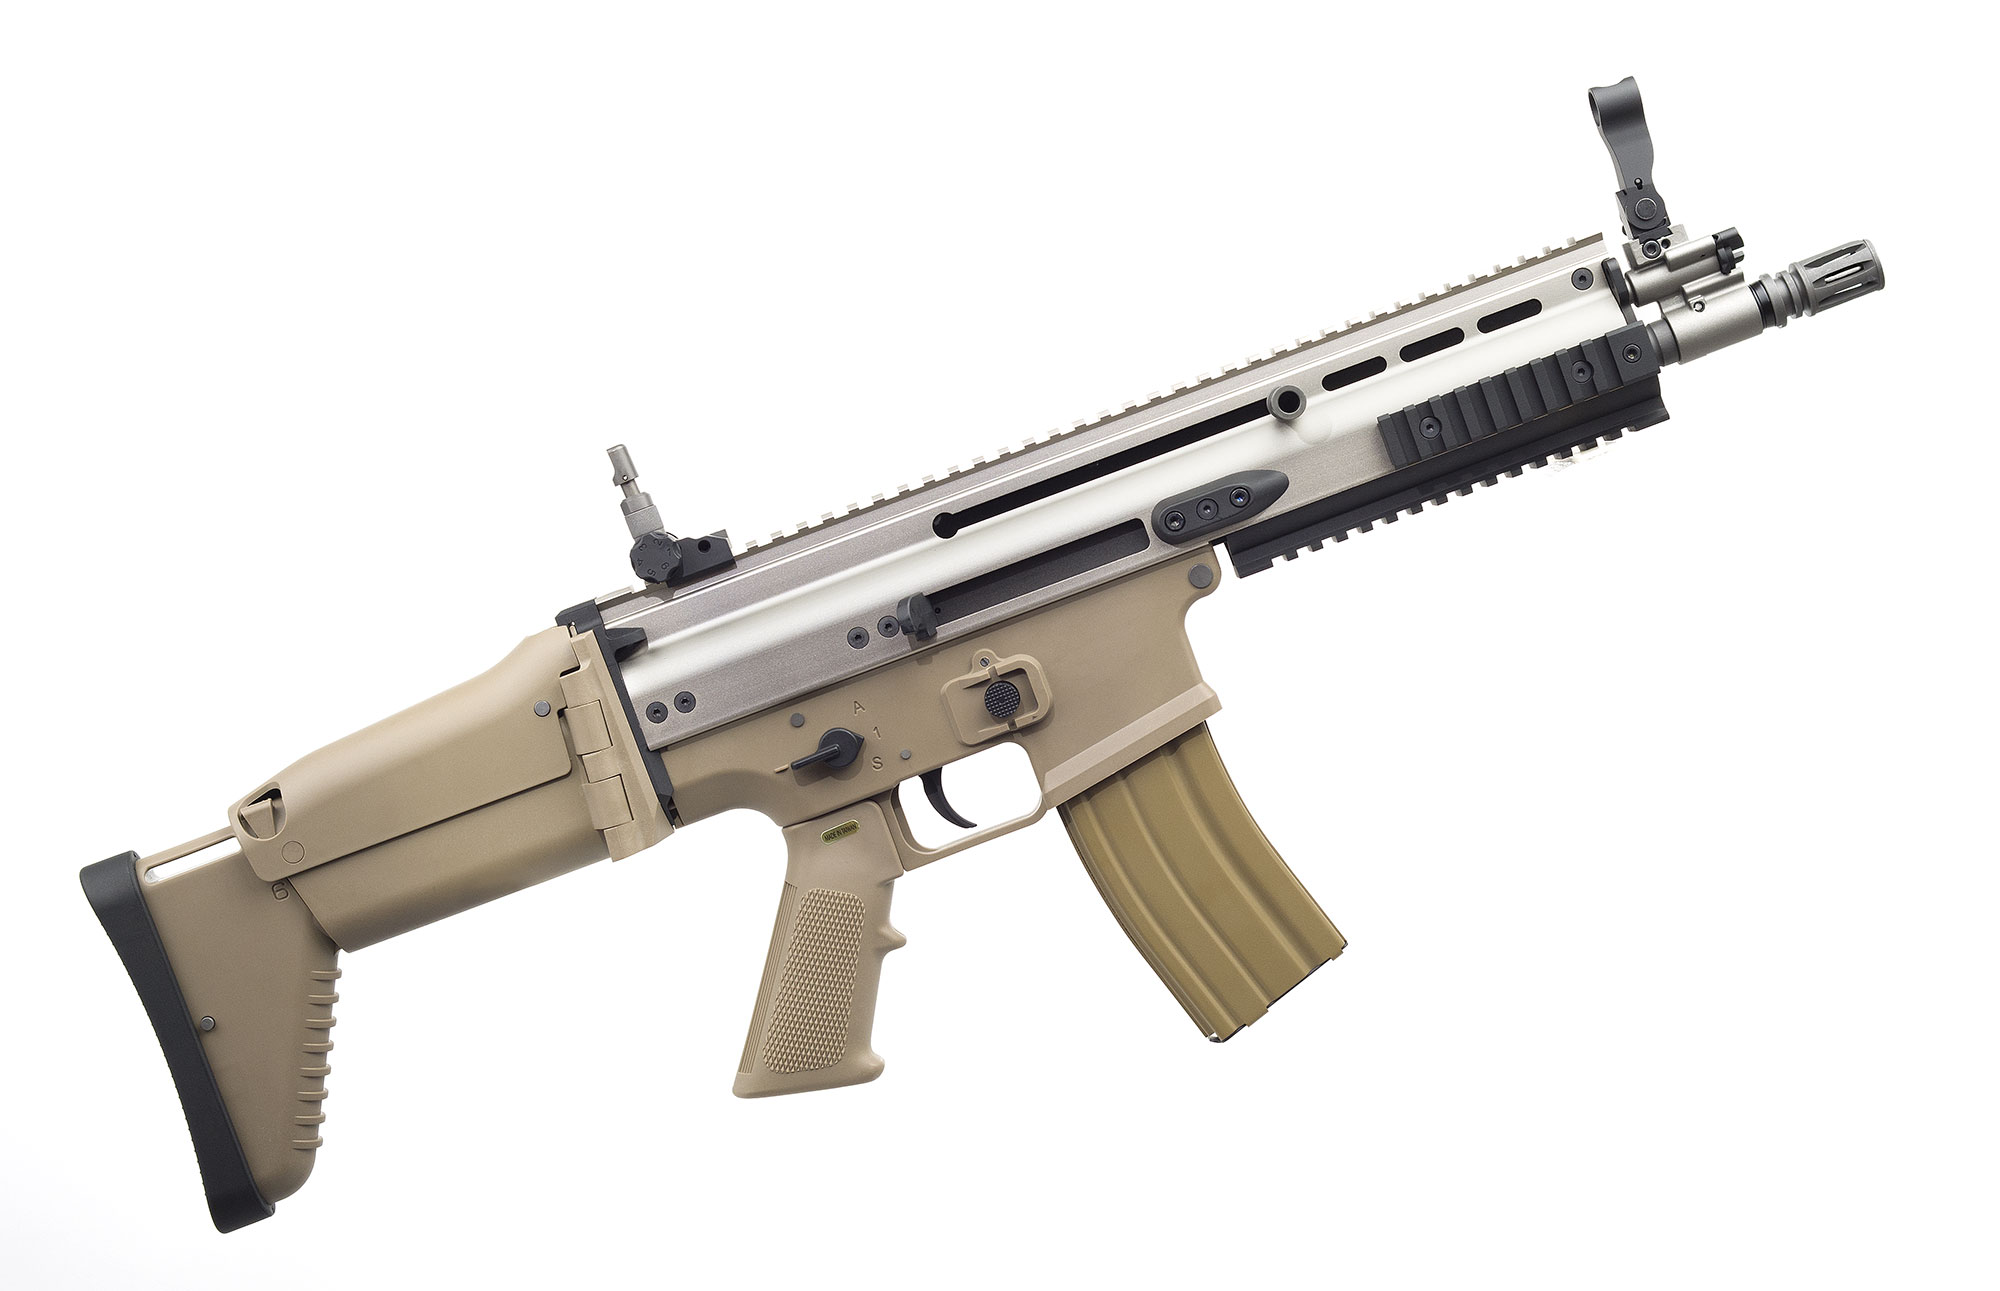 WE SCAR-L CQC GBB TAN